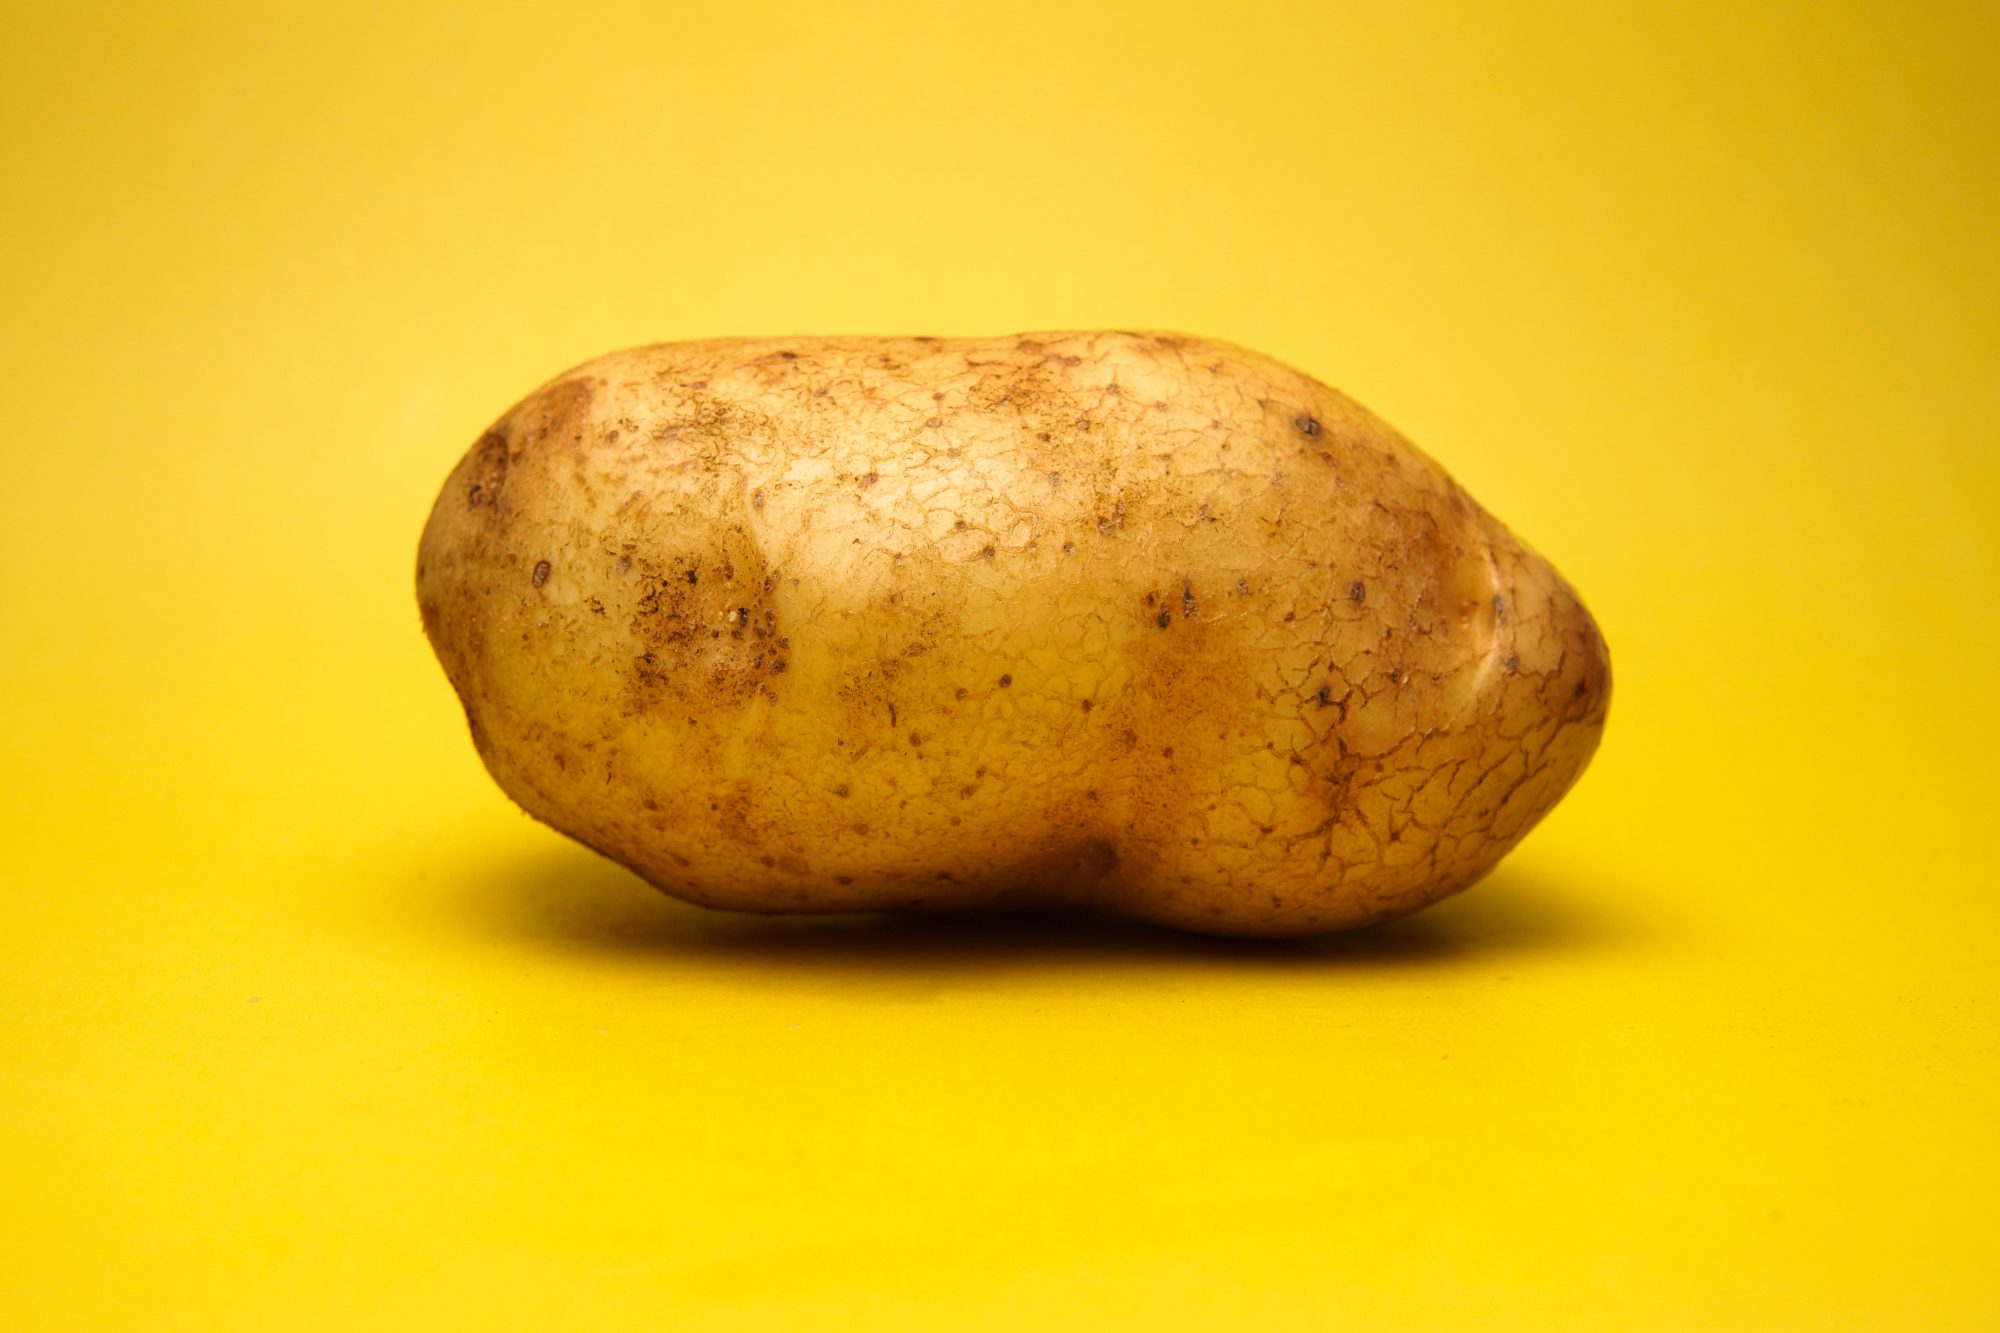 Close-Up Of Potato Against Yellow Background